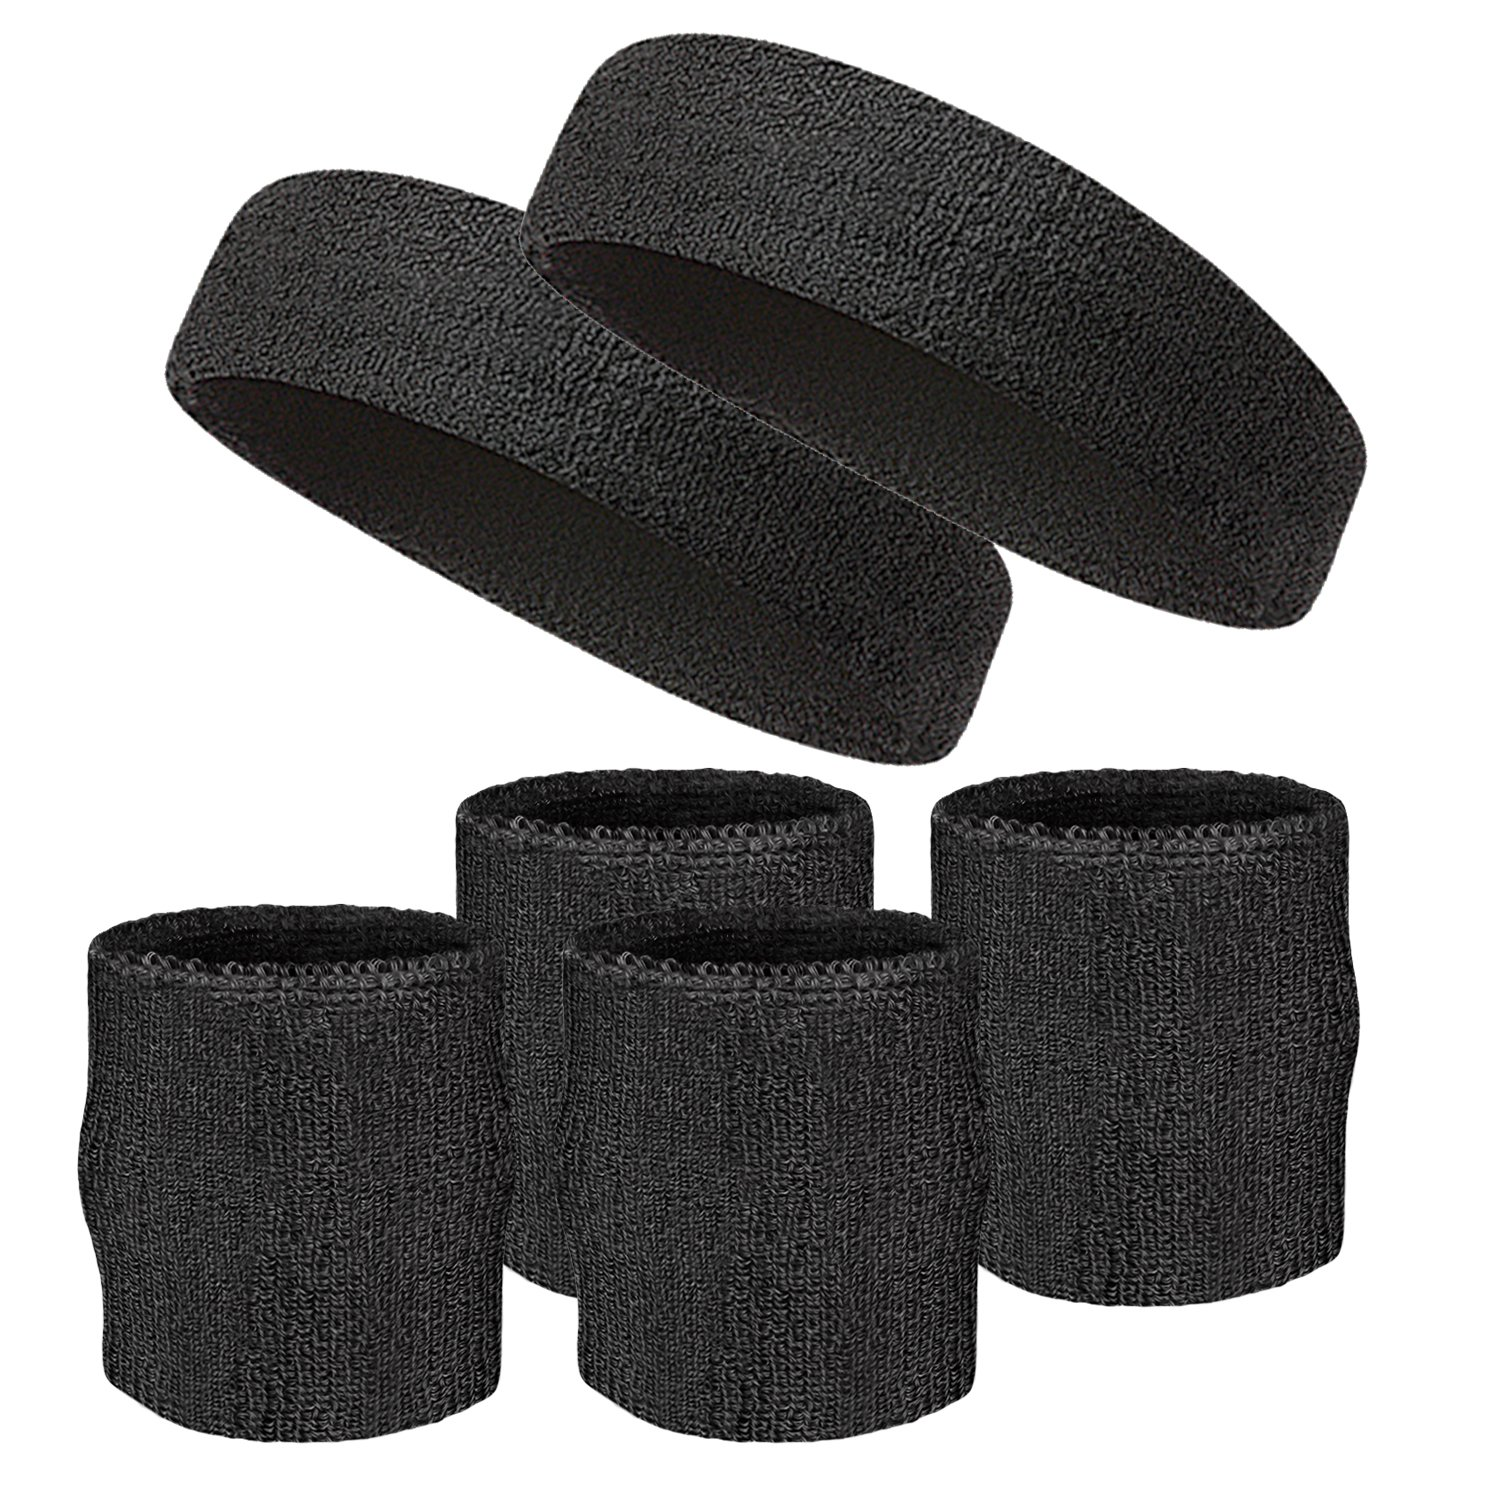 Elehere 2018 New Sweatband Wristband for Sports Basketball Football Absorbent Party Outdoor 3.5'' Pack of 6 (Black- Headbands & Wristbands) by Elehere (Image #1)